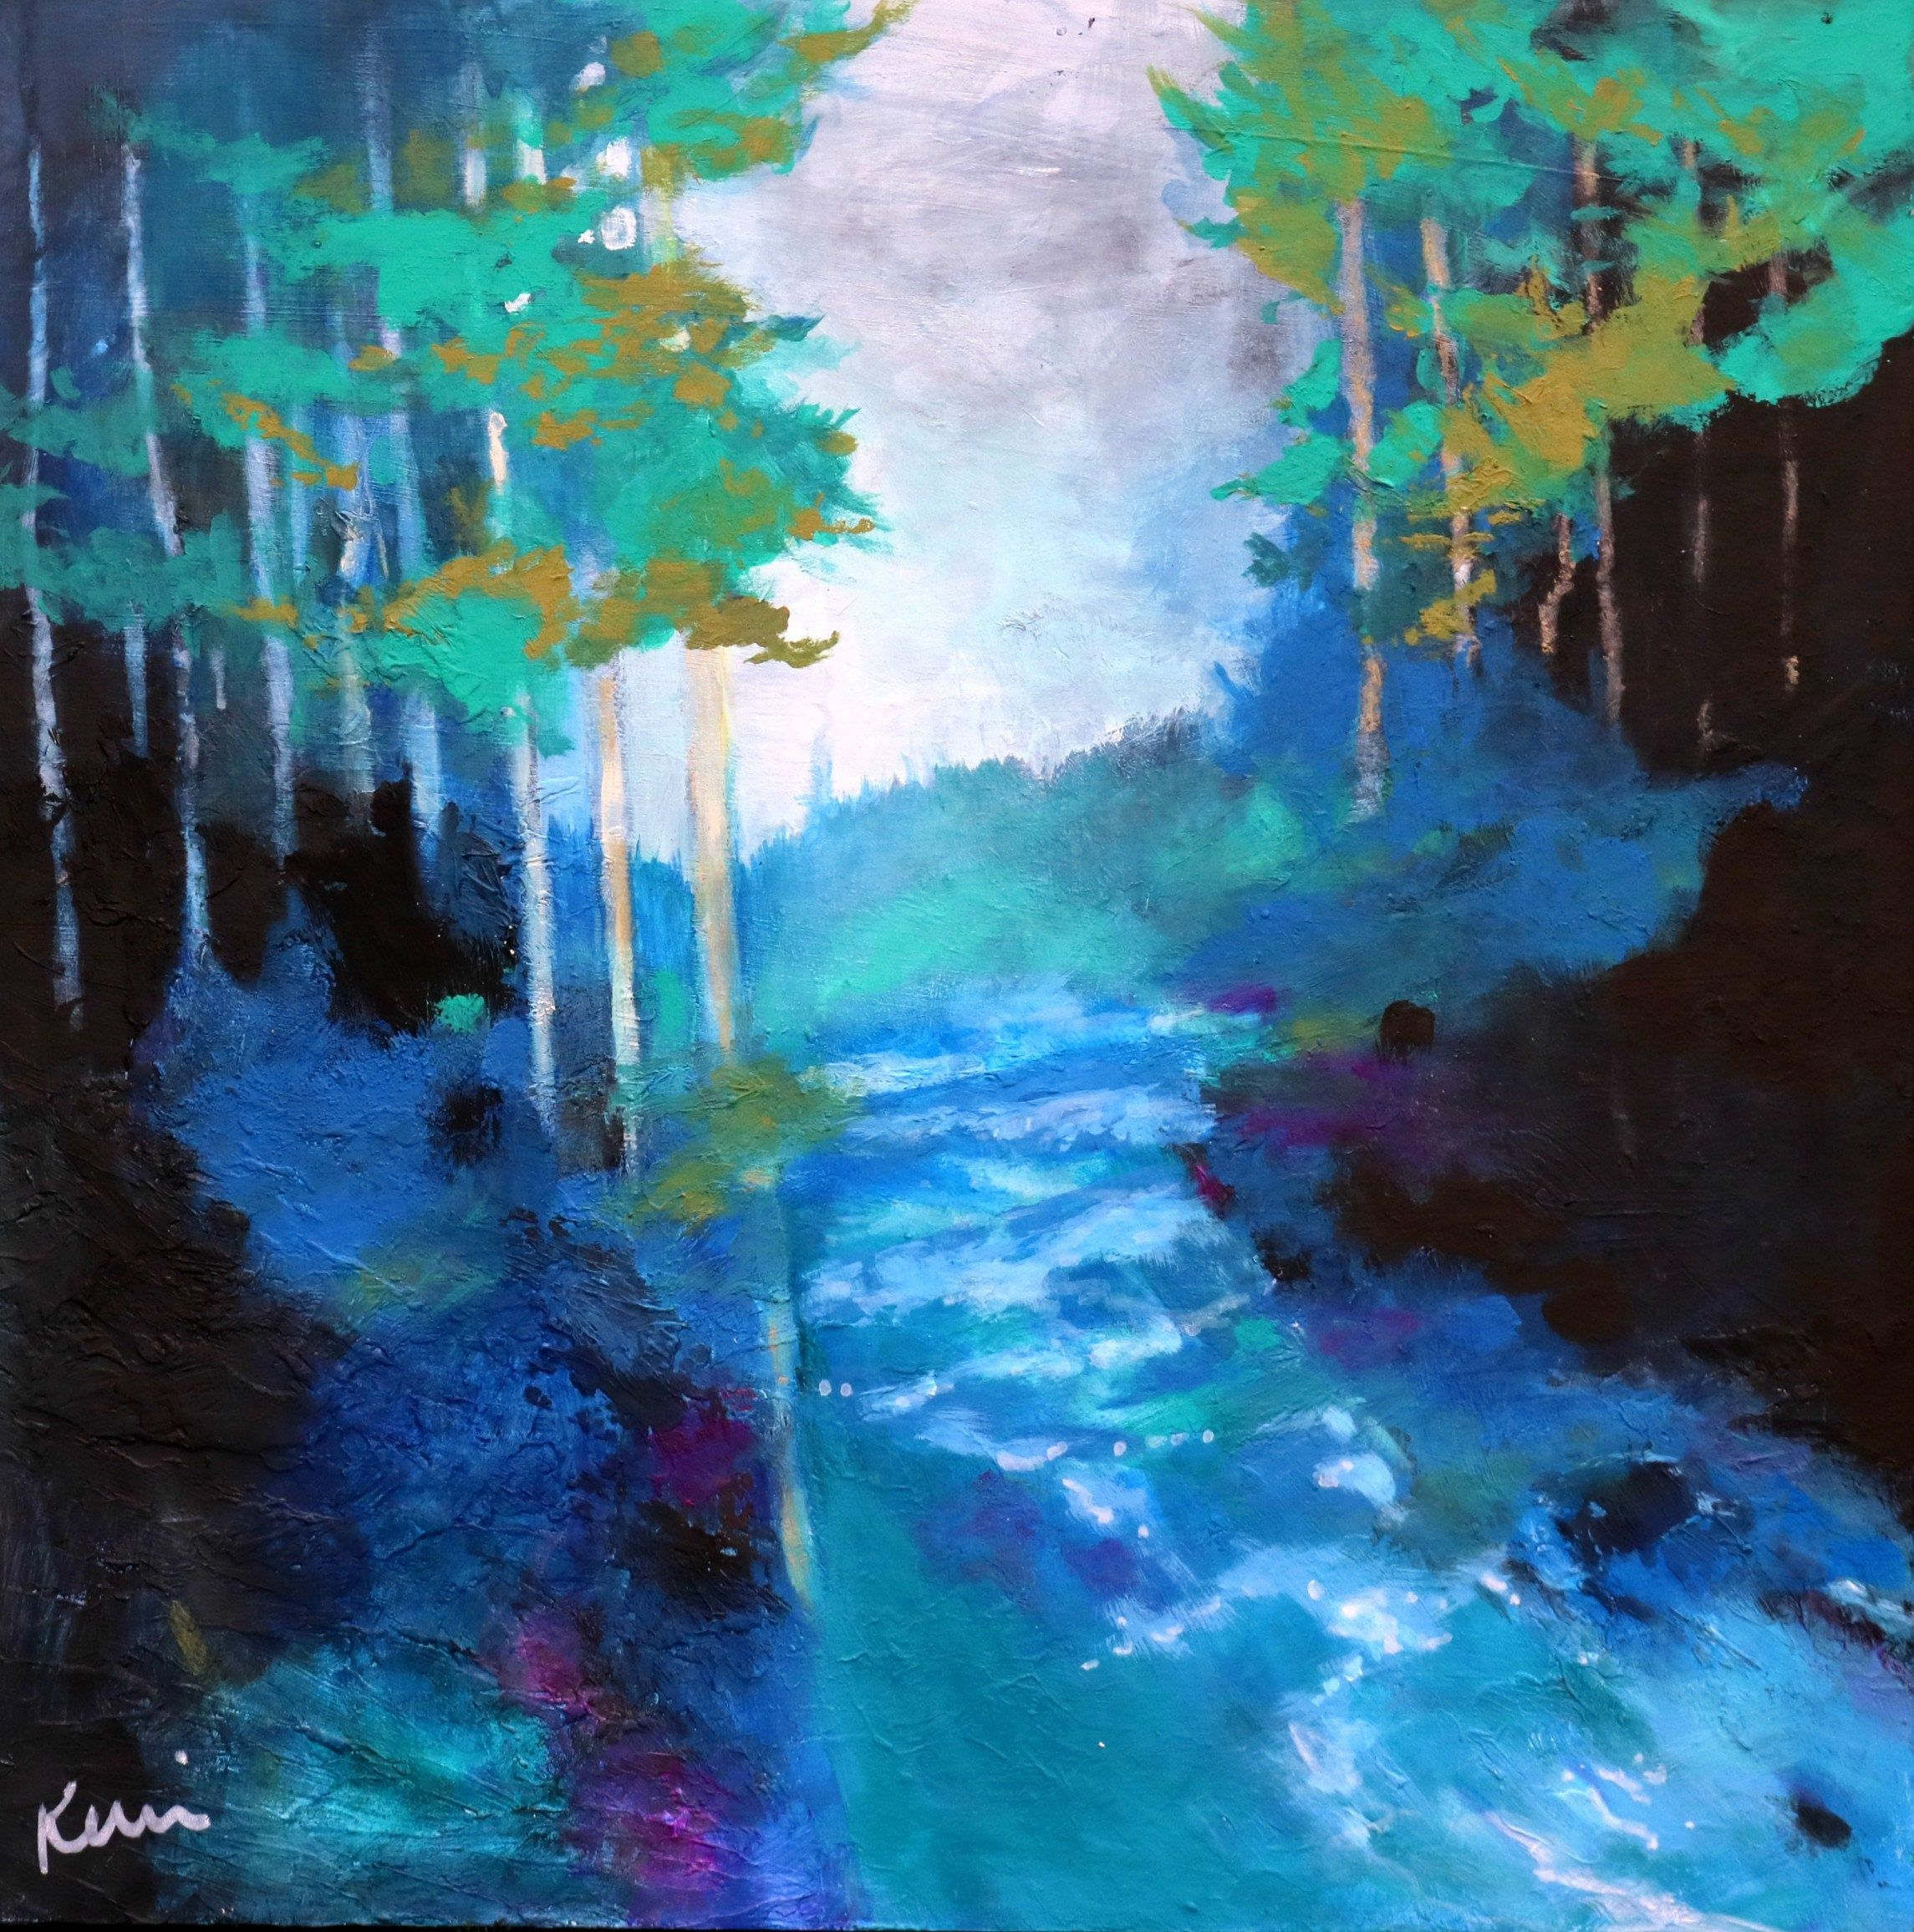 Colorful Landscape Painting With River And Trees Blue Forest Scene 20x20 Living Water Painting Art Landscape Paintings